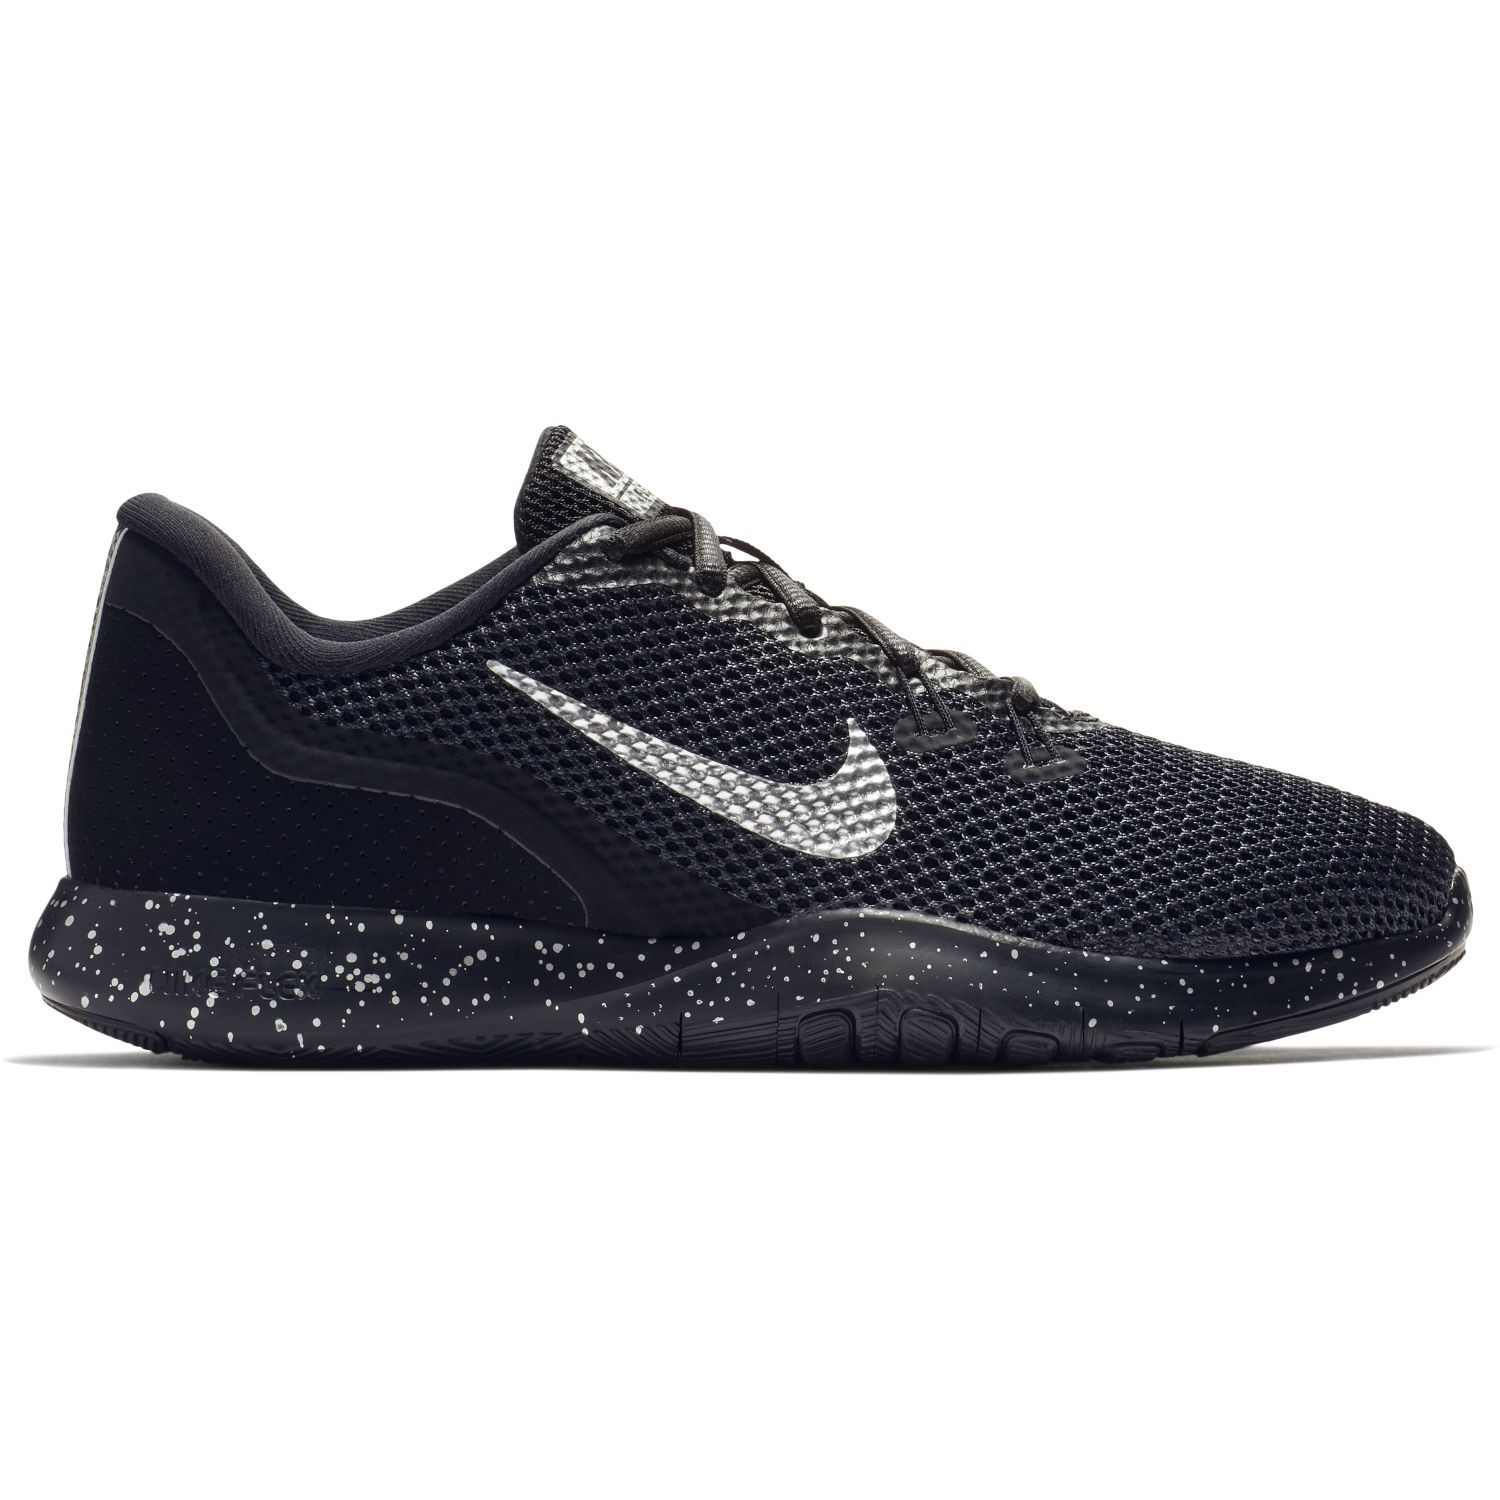 8c5fa066297a Nike Flex Trainer 7 Premium - Womens Training Shoes- Black Chrome-Anthracite